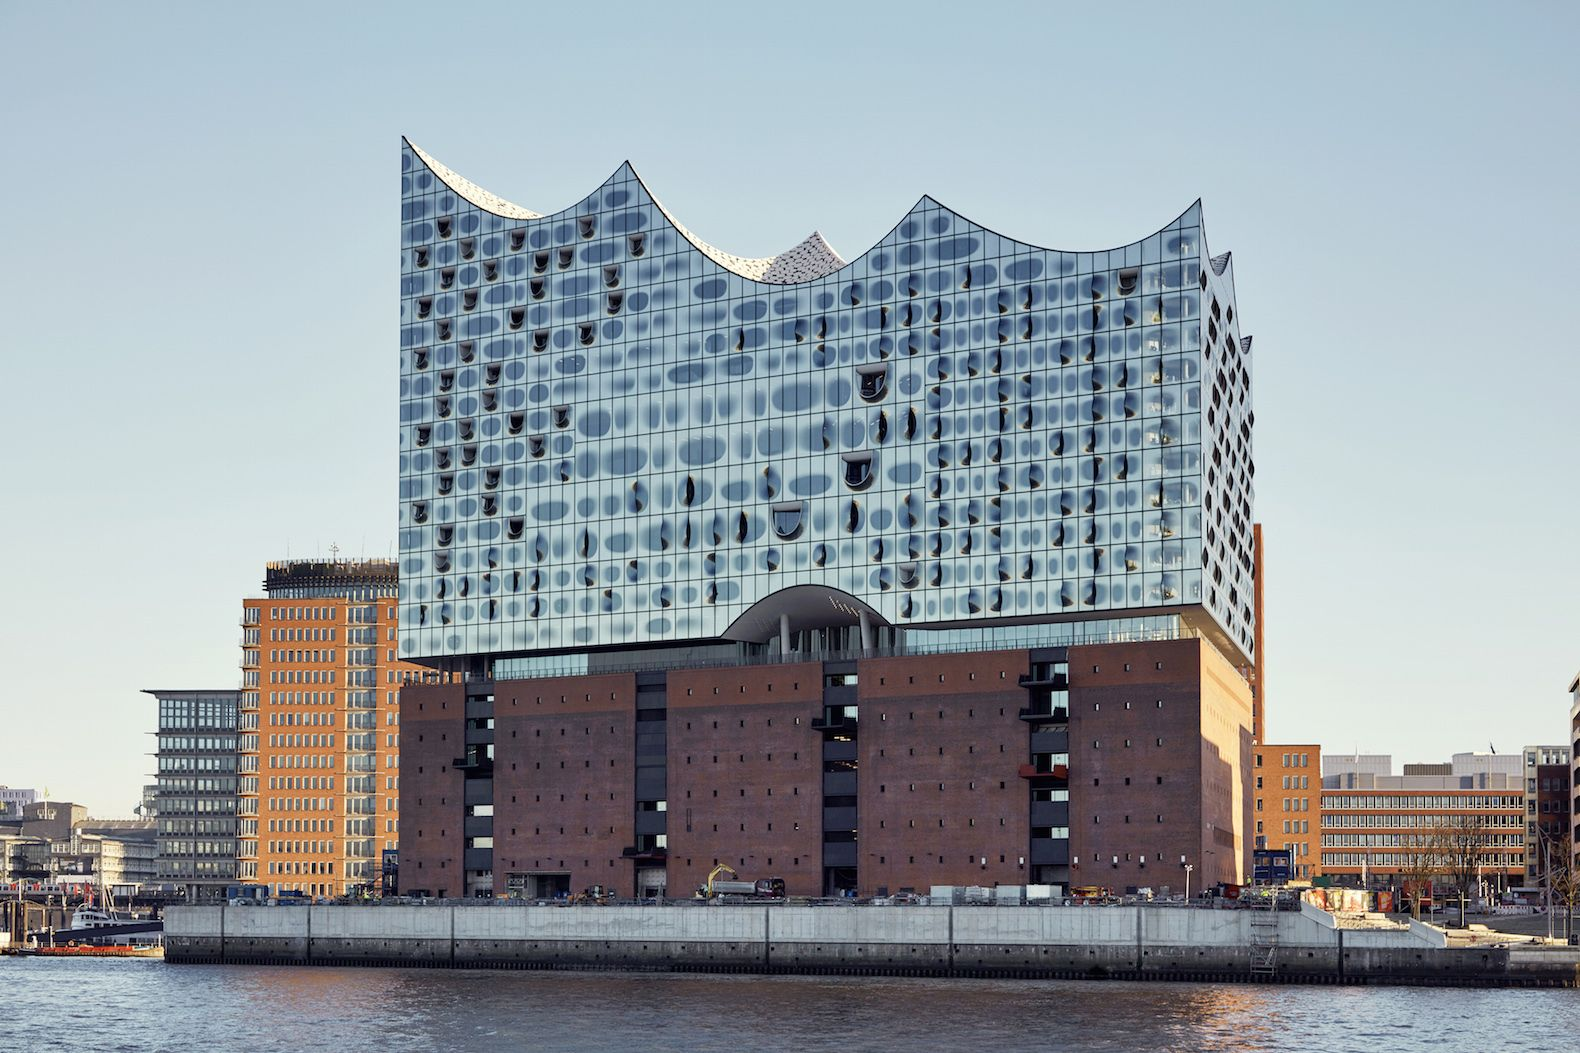 Herzog De Meuron S Stunning Elbphilharmonie To Finally Open In January Cultural Architecture Architecture Elbphilharmonie Concert Hall